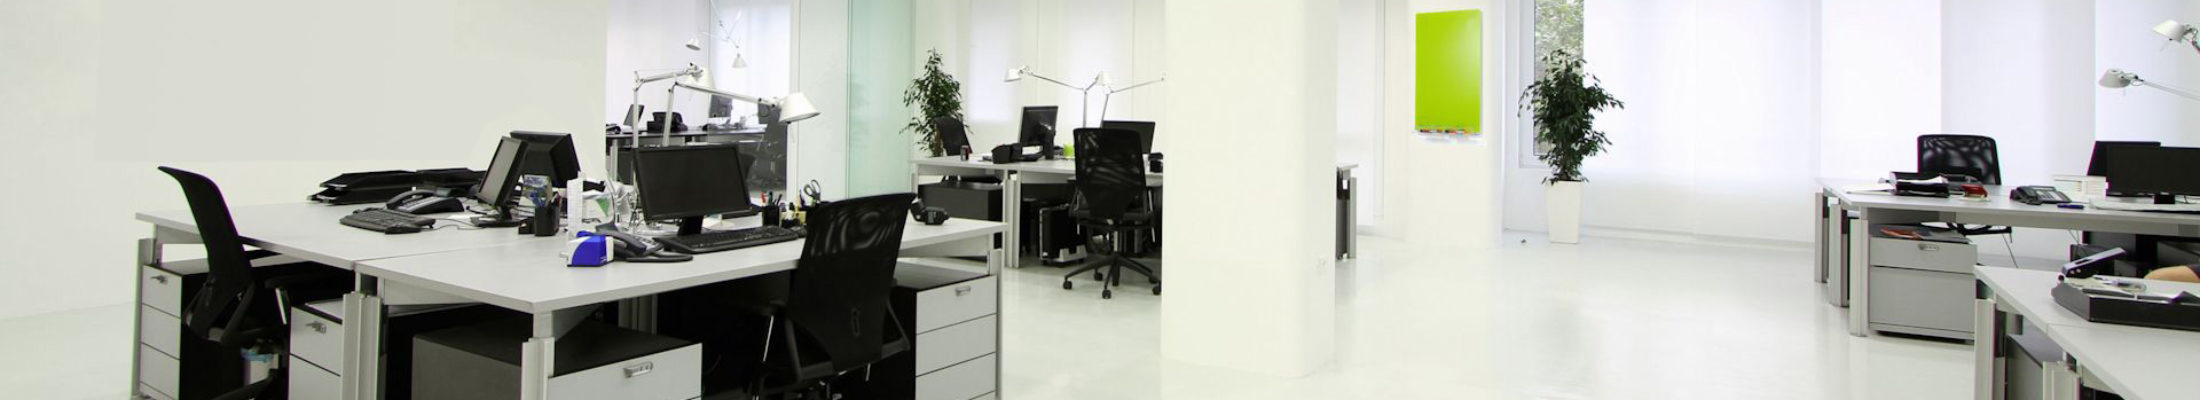 https://www.greenfacilities.co.uk/wp-content/uploads/2017/01/office-cleaning3-2200x400.jpg